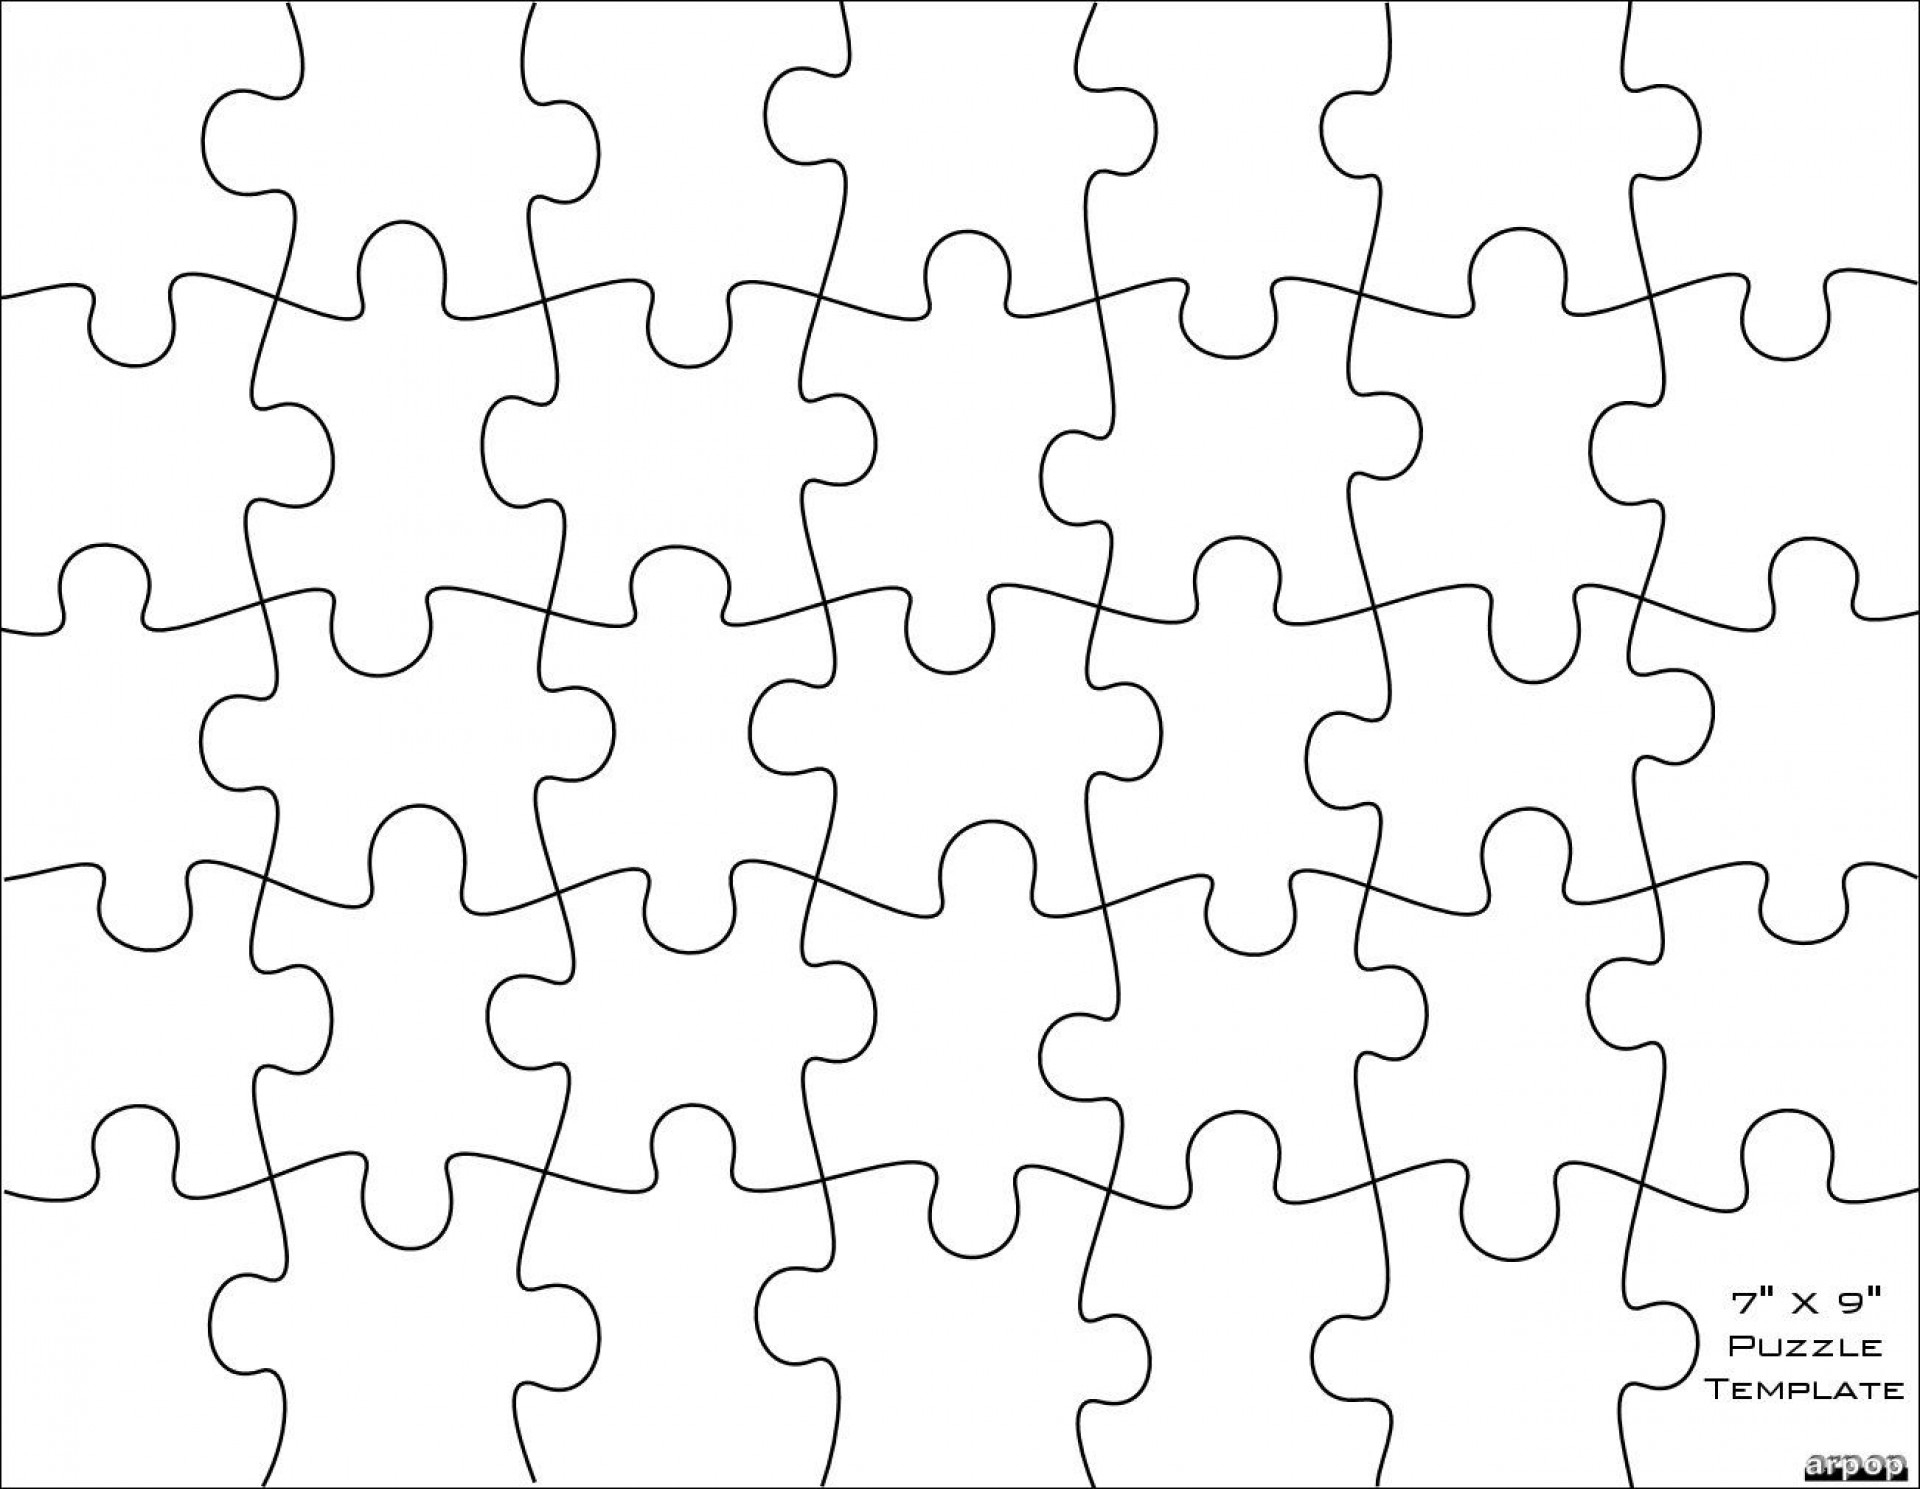 006 Jigsaw Puzzle Blank Template Twenty Pieces Simple Jig Saw - Jigsaw Puzzle Maker Free Printable